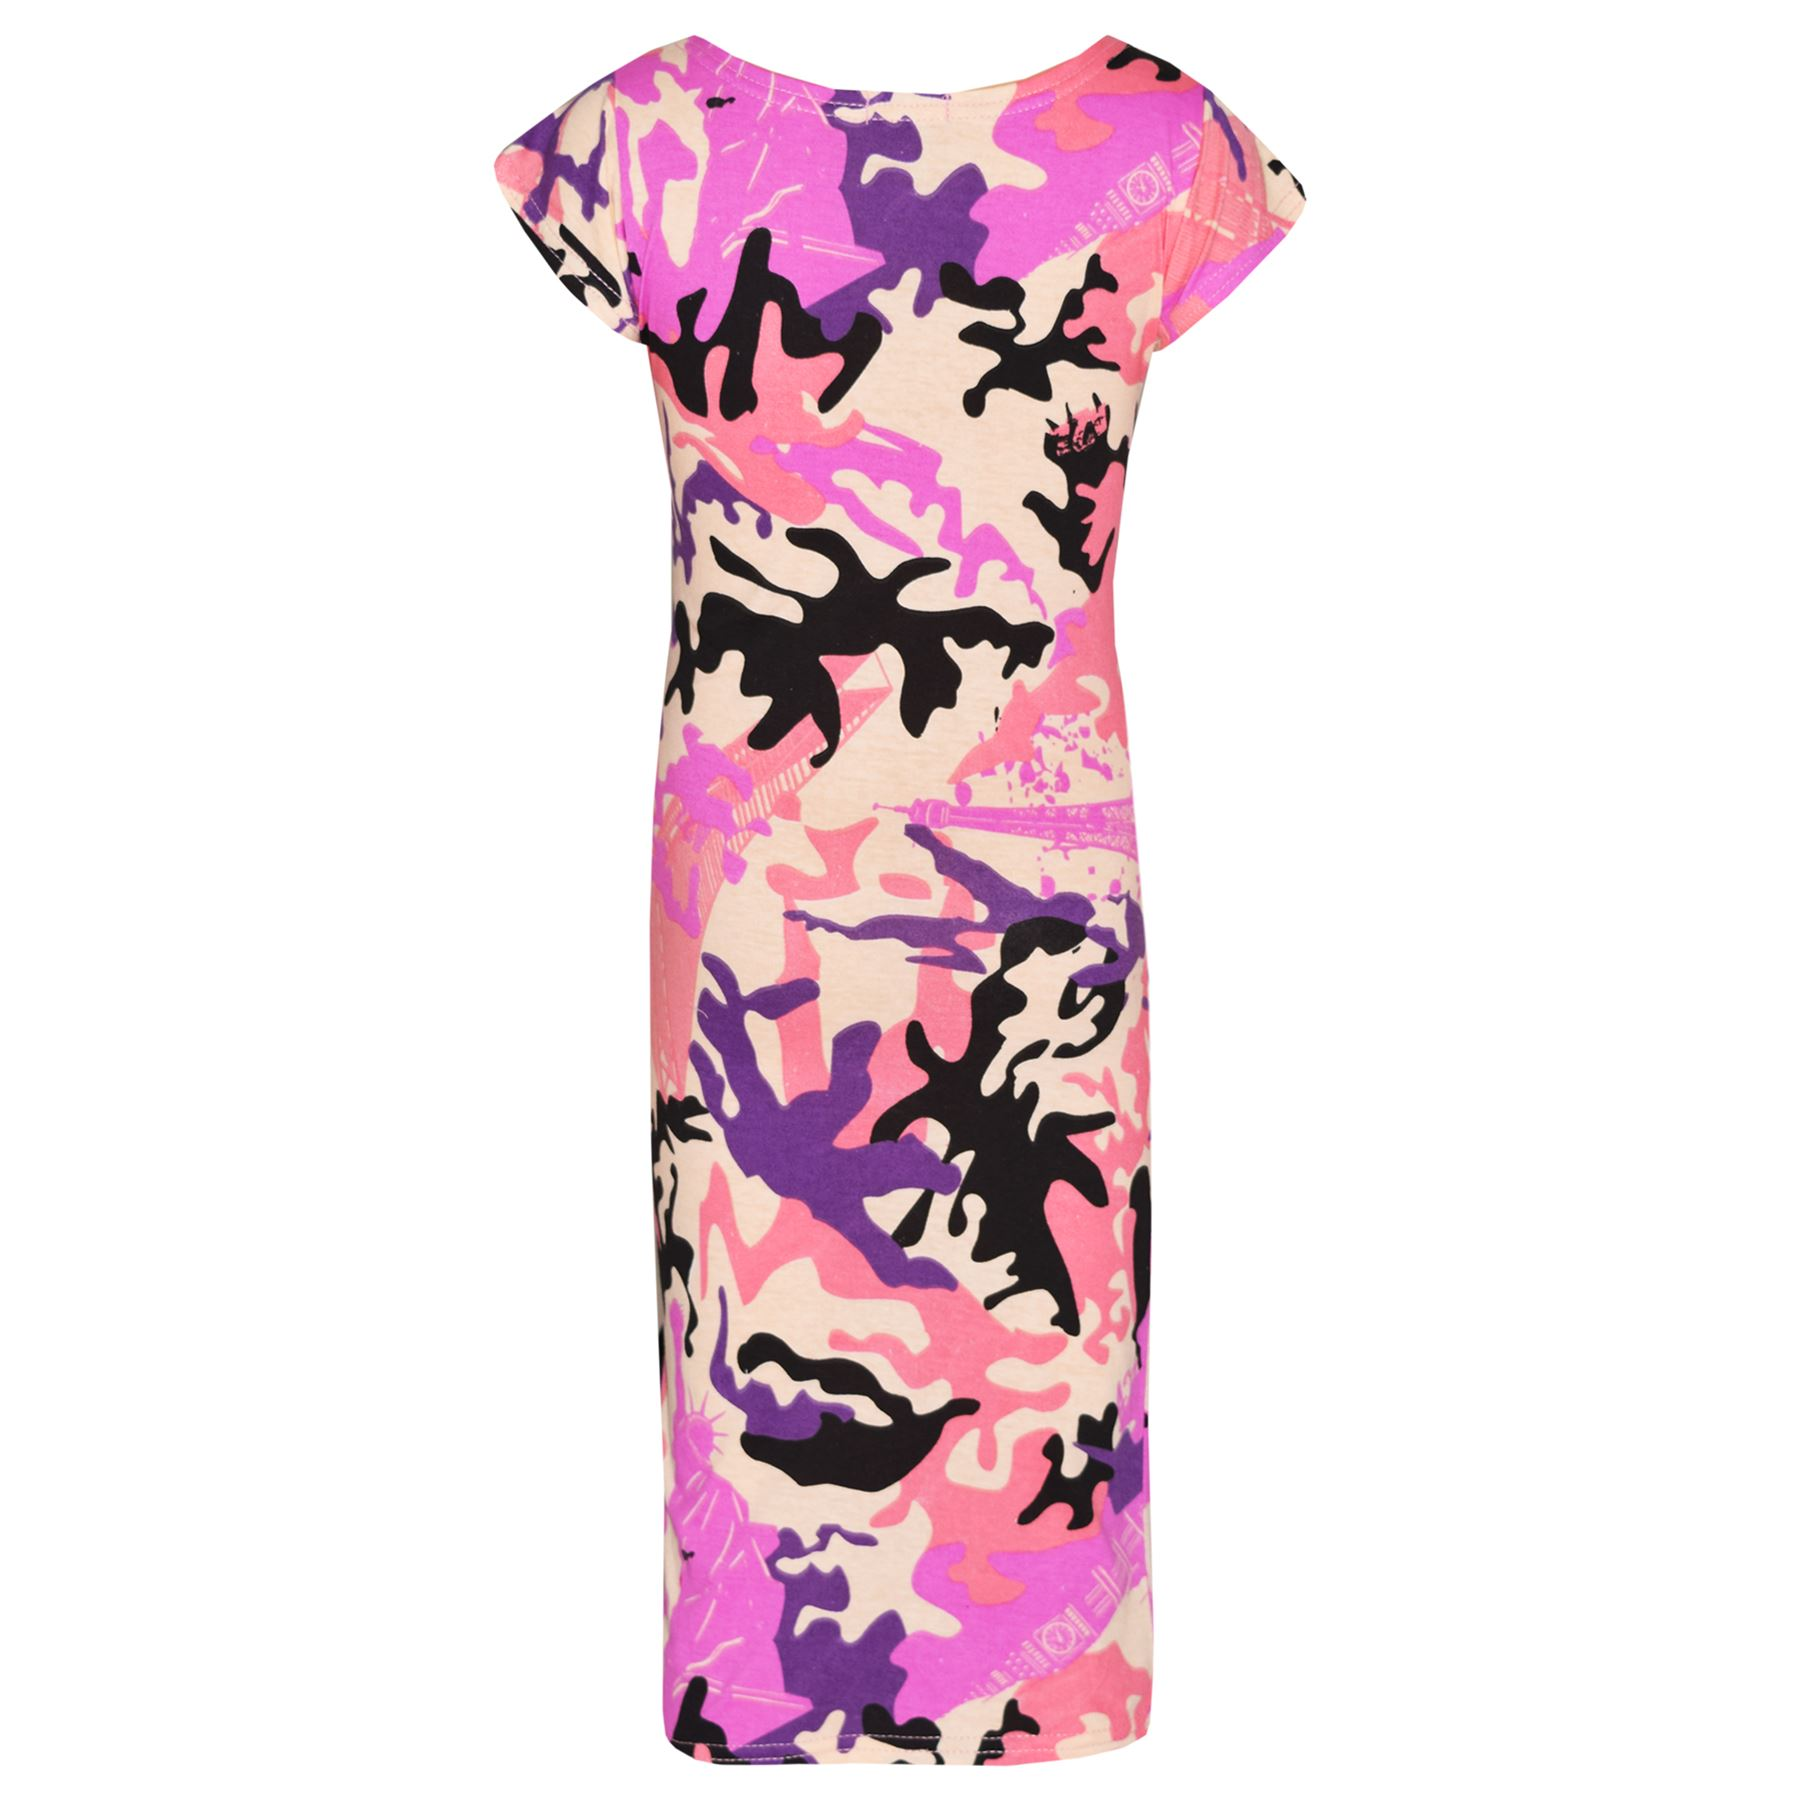 Girls-Dress-Kids-Camouflage-Print-Summer-Party-Bodycon-Midi-Dresses-5-13-Years thumbnail 3